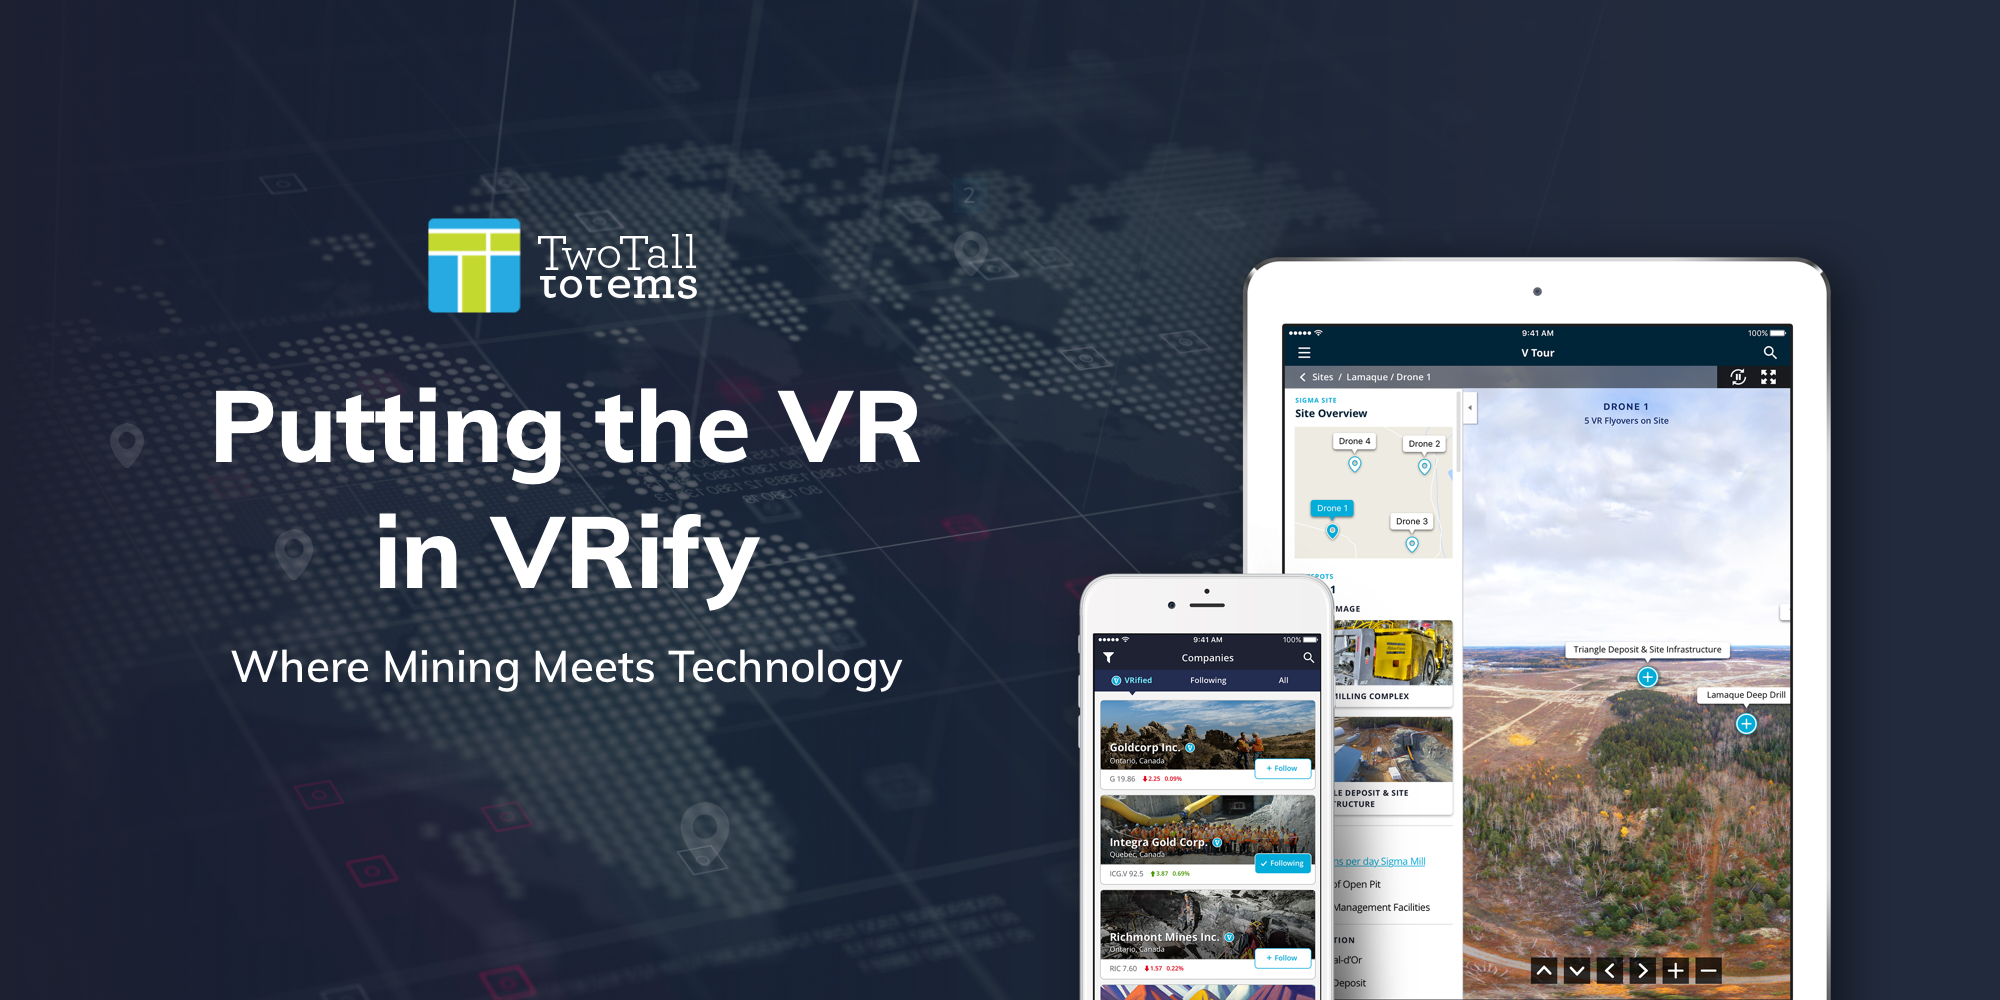 Putting the VR in VRify